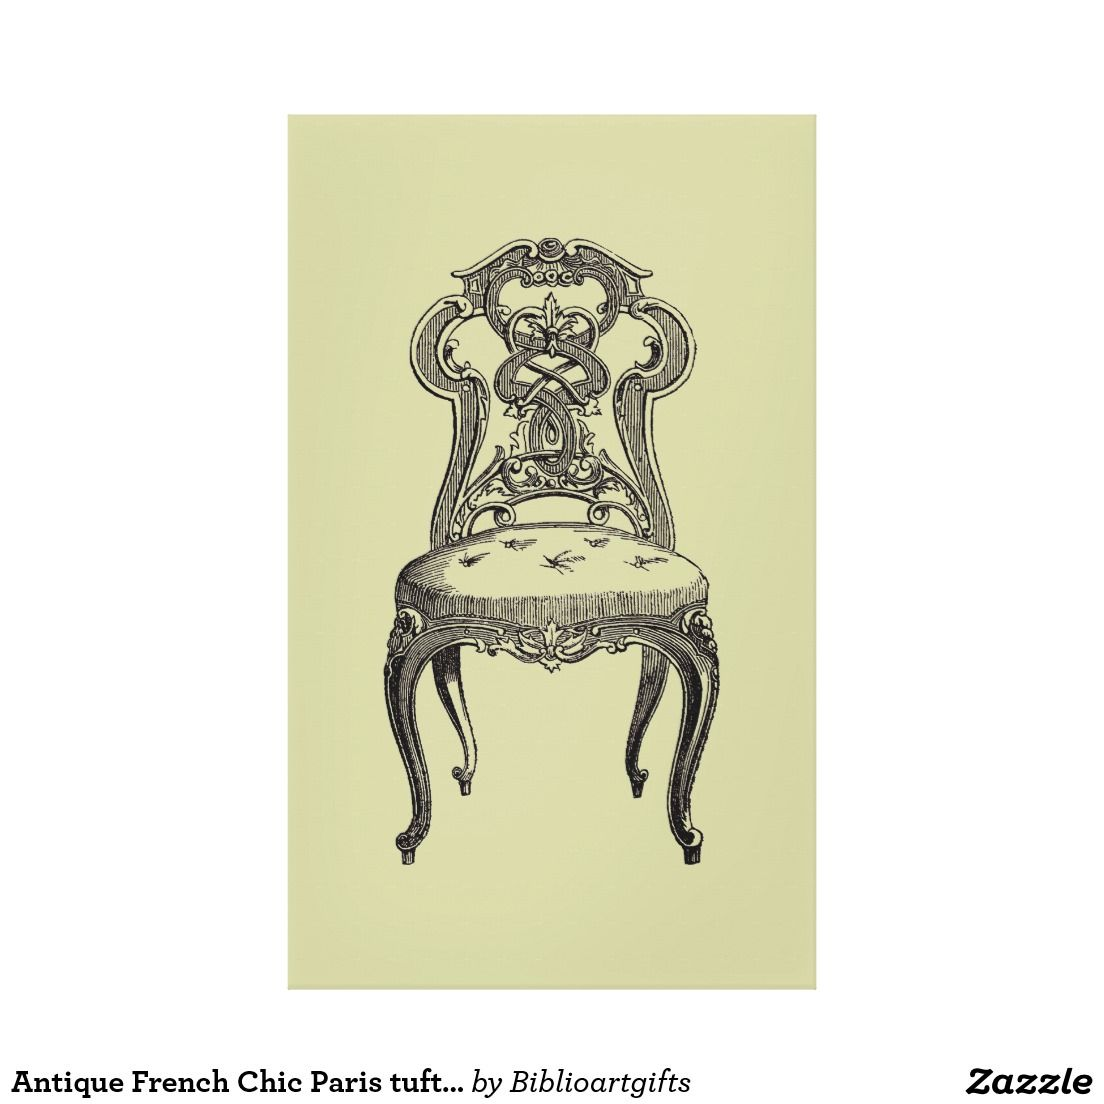 Antique French Chic Paris tufted chairs wall decor | WALL ART DECOR ...